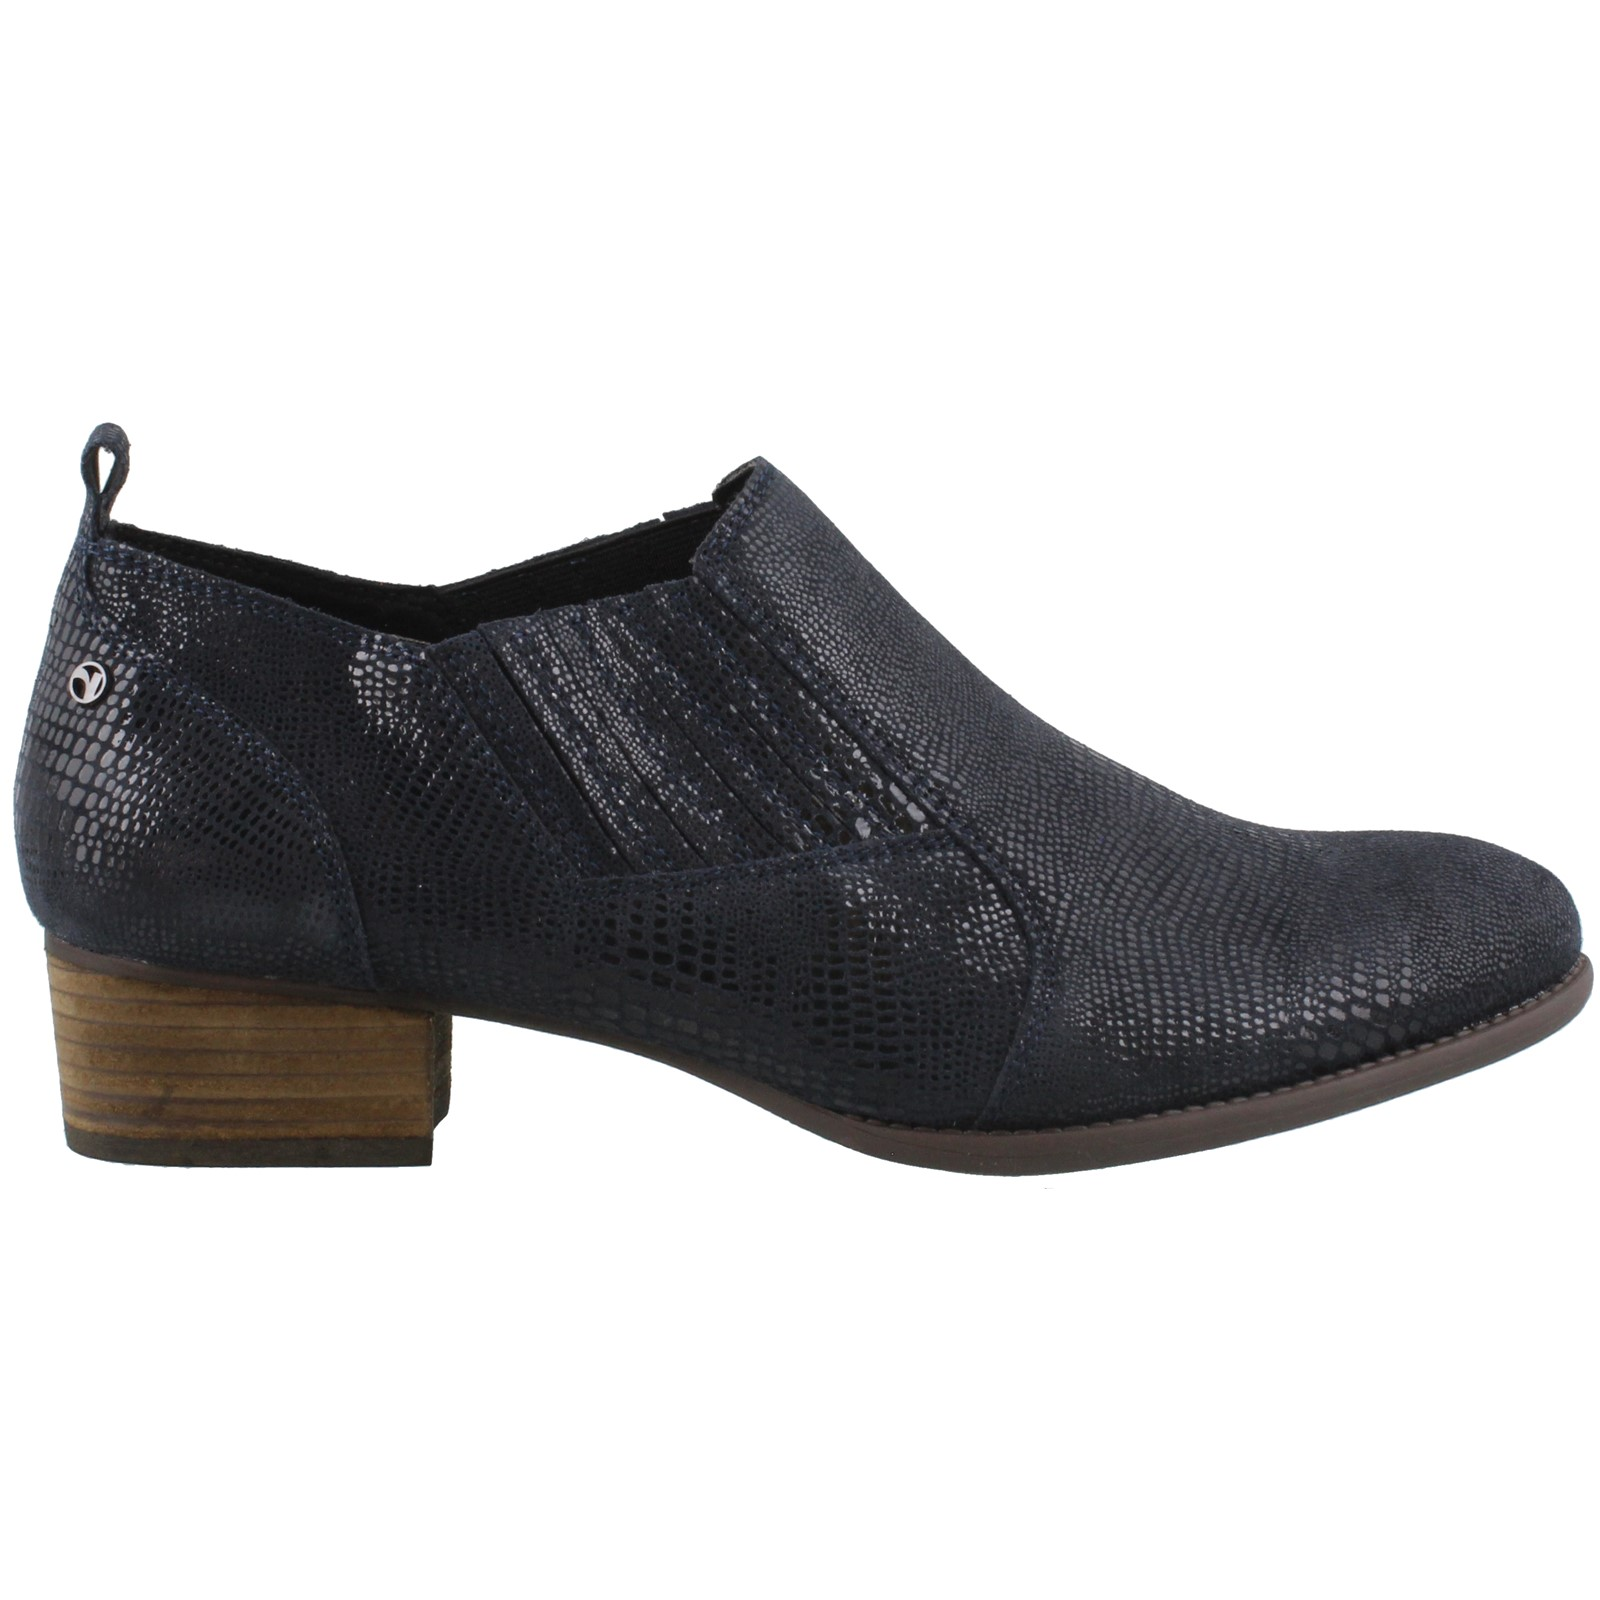 Women's REVERE, PALERMO ANKLE BOOTS